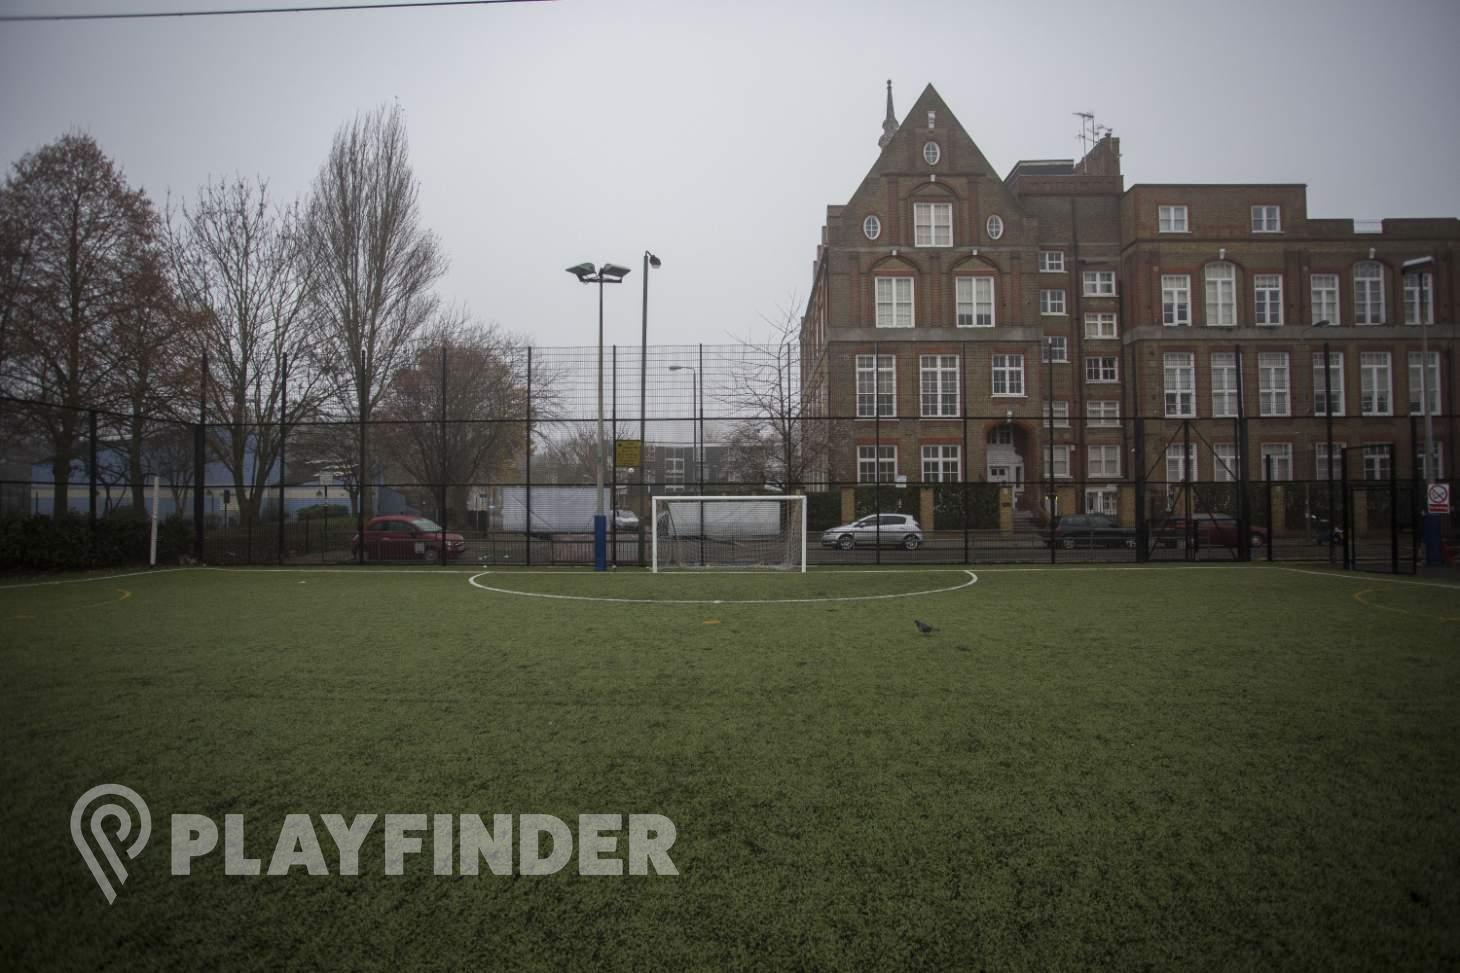 Sacred Heart R C Primary School 6 a side   3G Astroturf football pitch